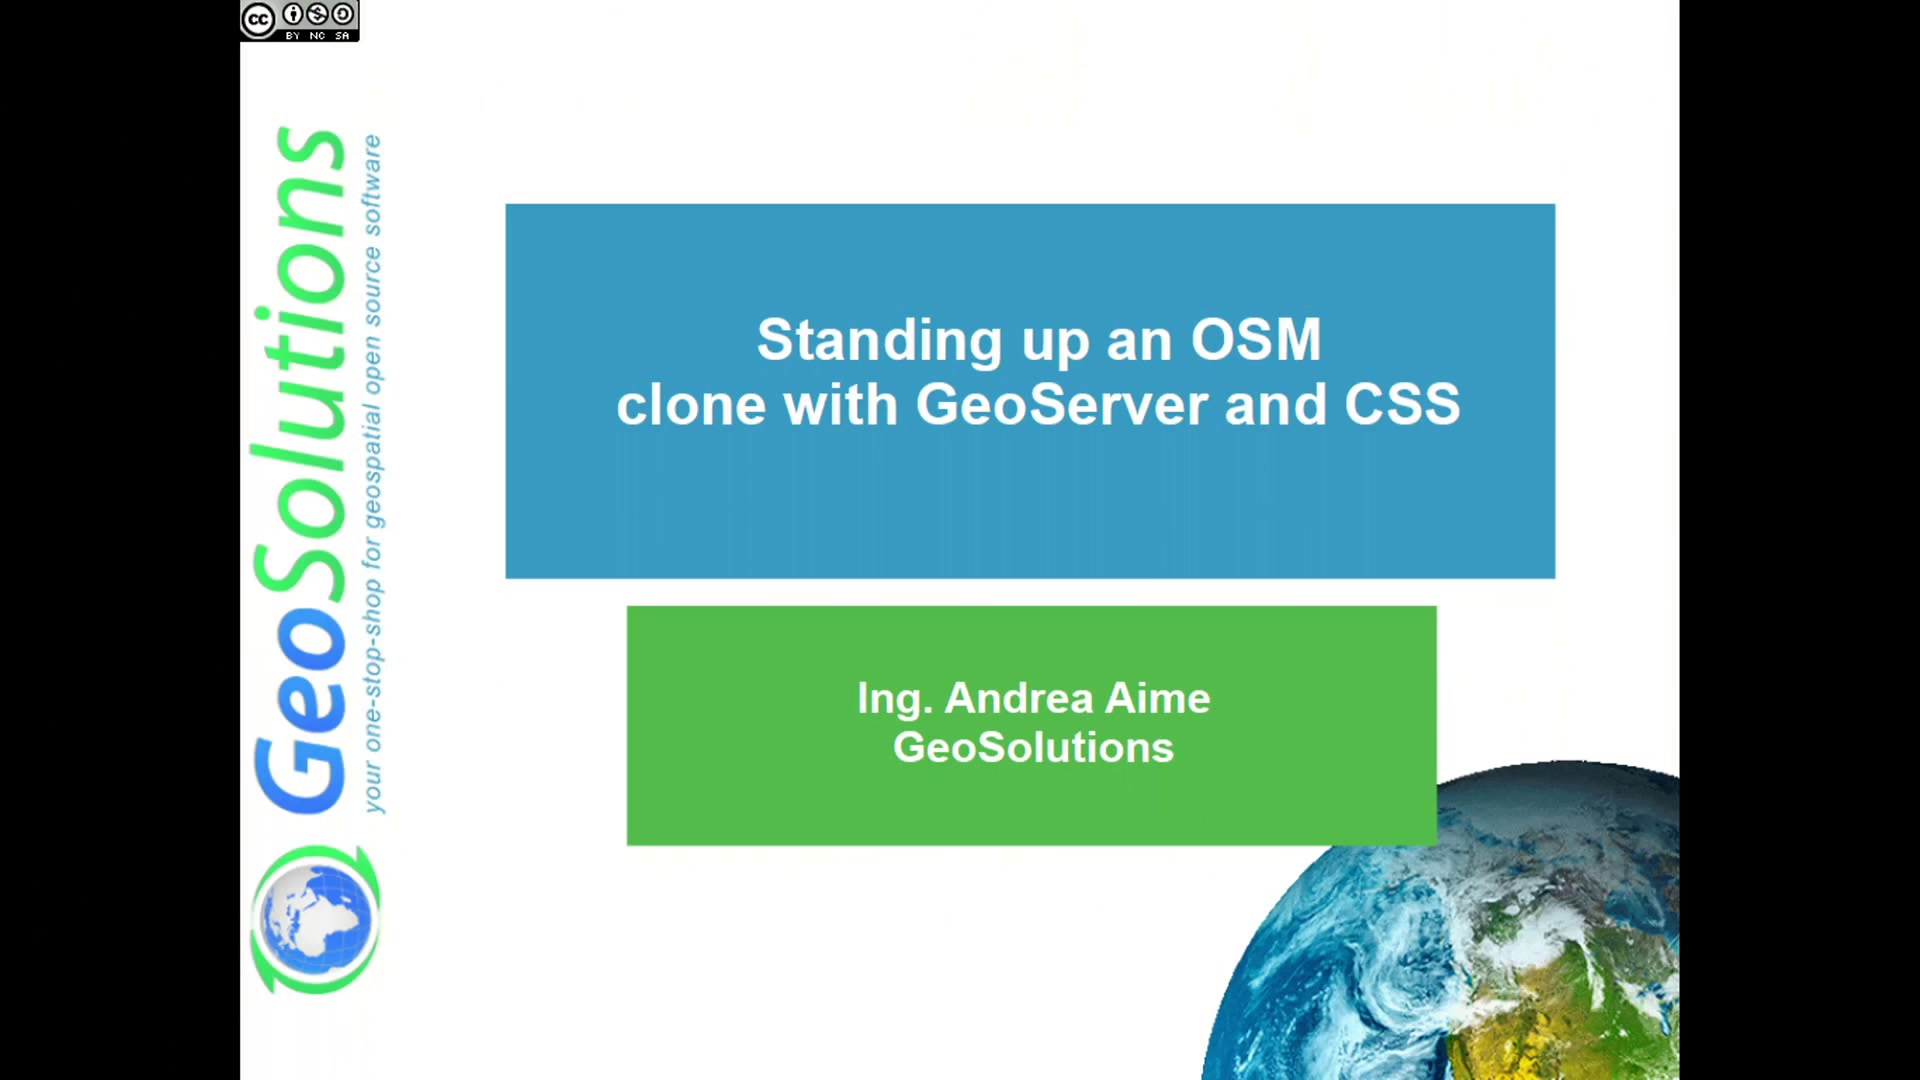 media ccc de - Standing up a OSM clone with GeoServer and CSS